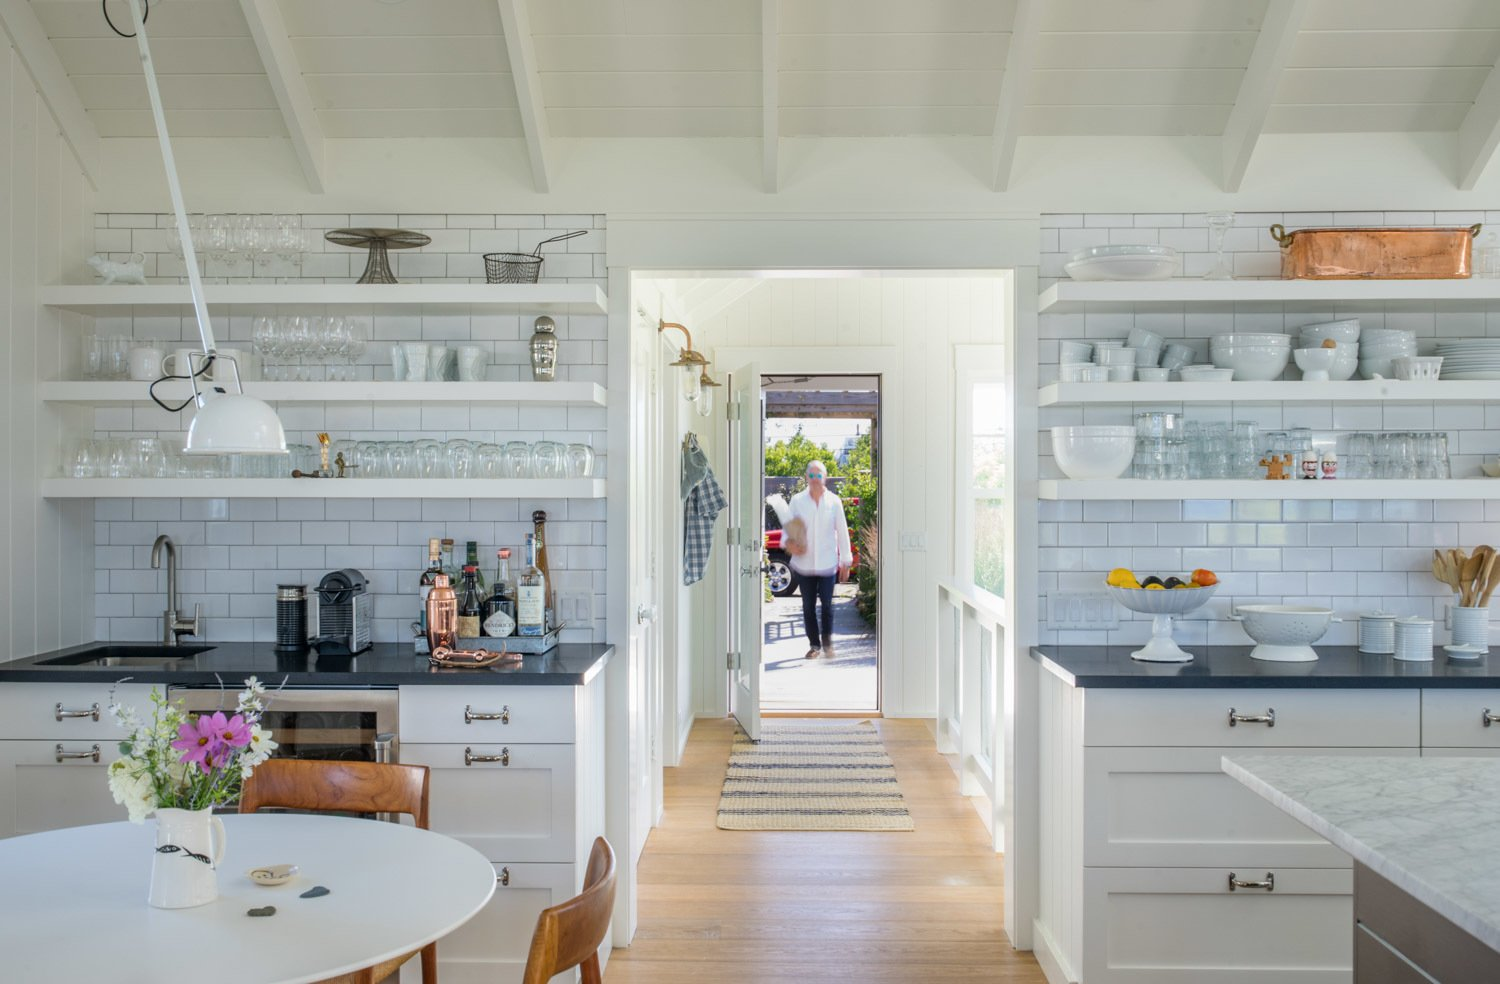 Entry to the main house leads casually onto a simple, minimalist open kitchen featuring a 5' by 12' marble topped island especially handy for mingling guests.. A breakfast/bar alcove tucked away in a corner is available for a quick home grown salad, an unpretentious capucchino, or a cool drink.  Corkin House